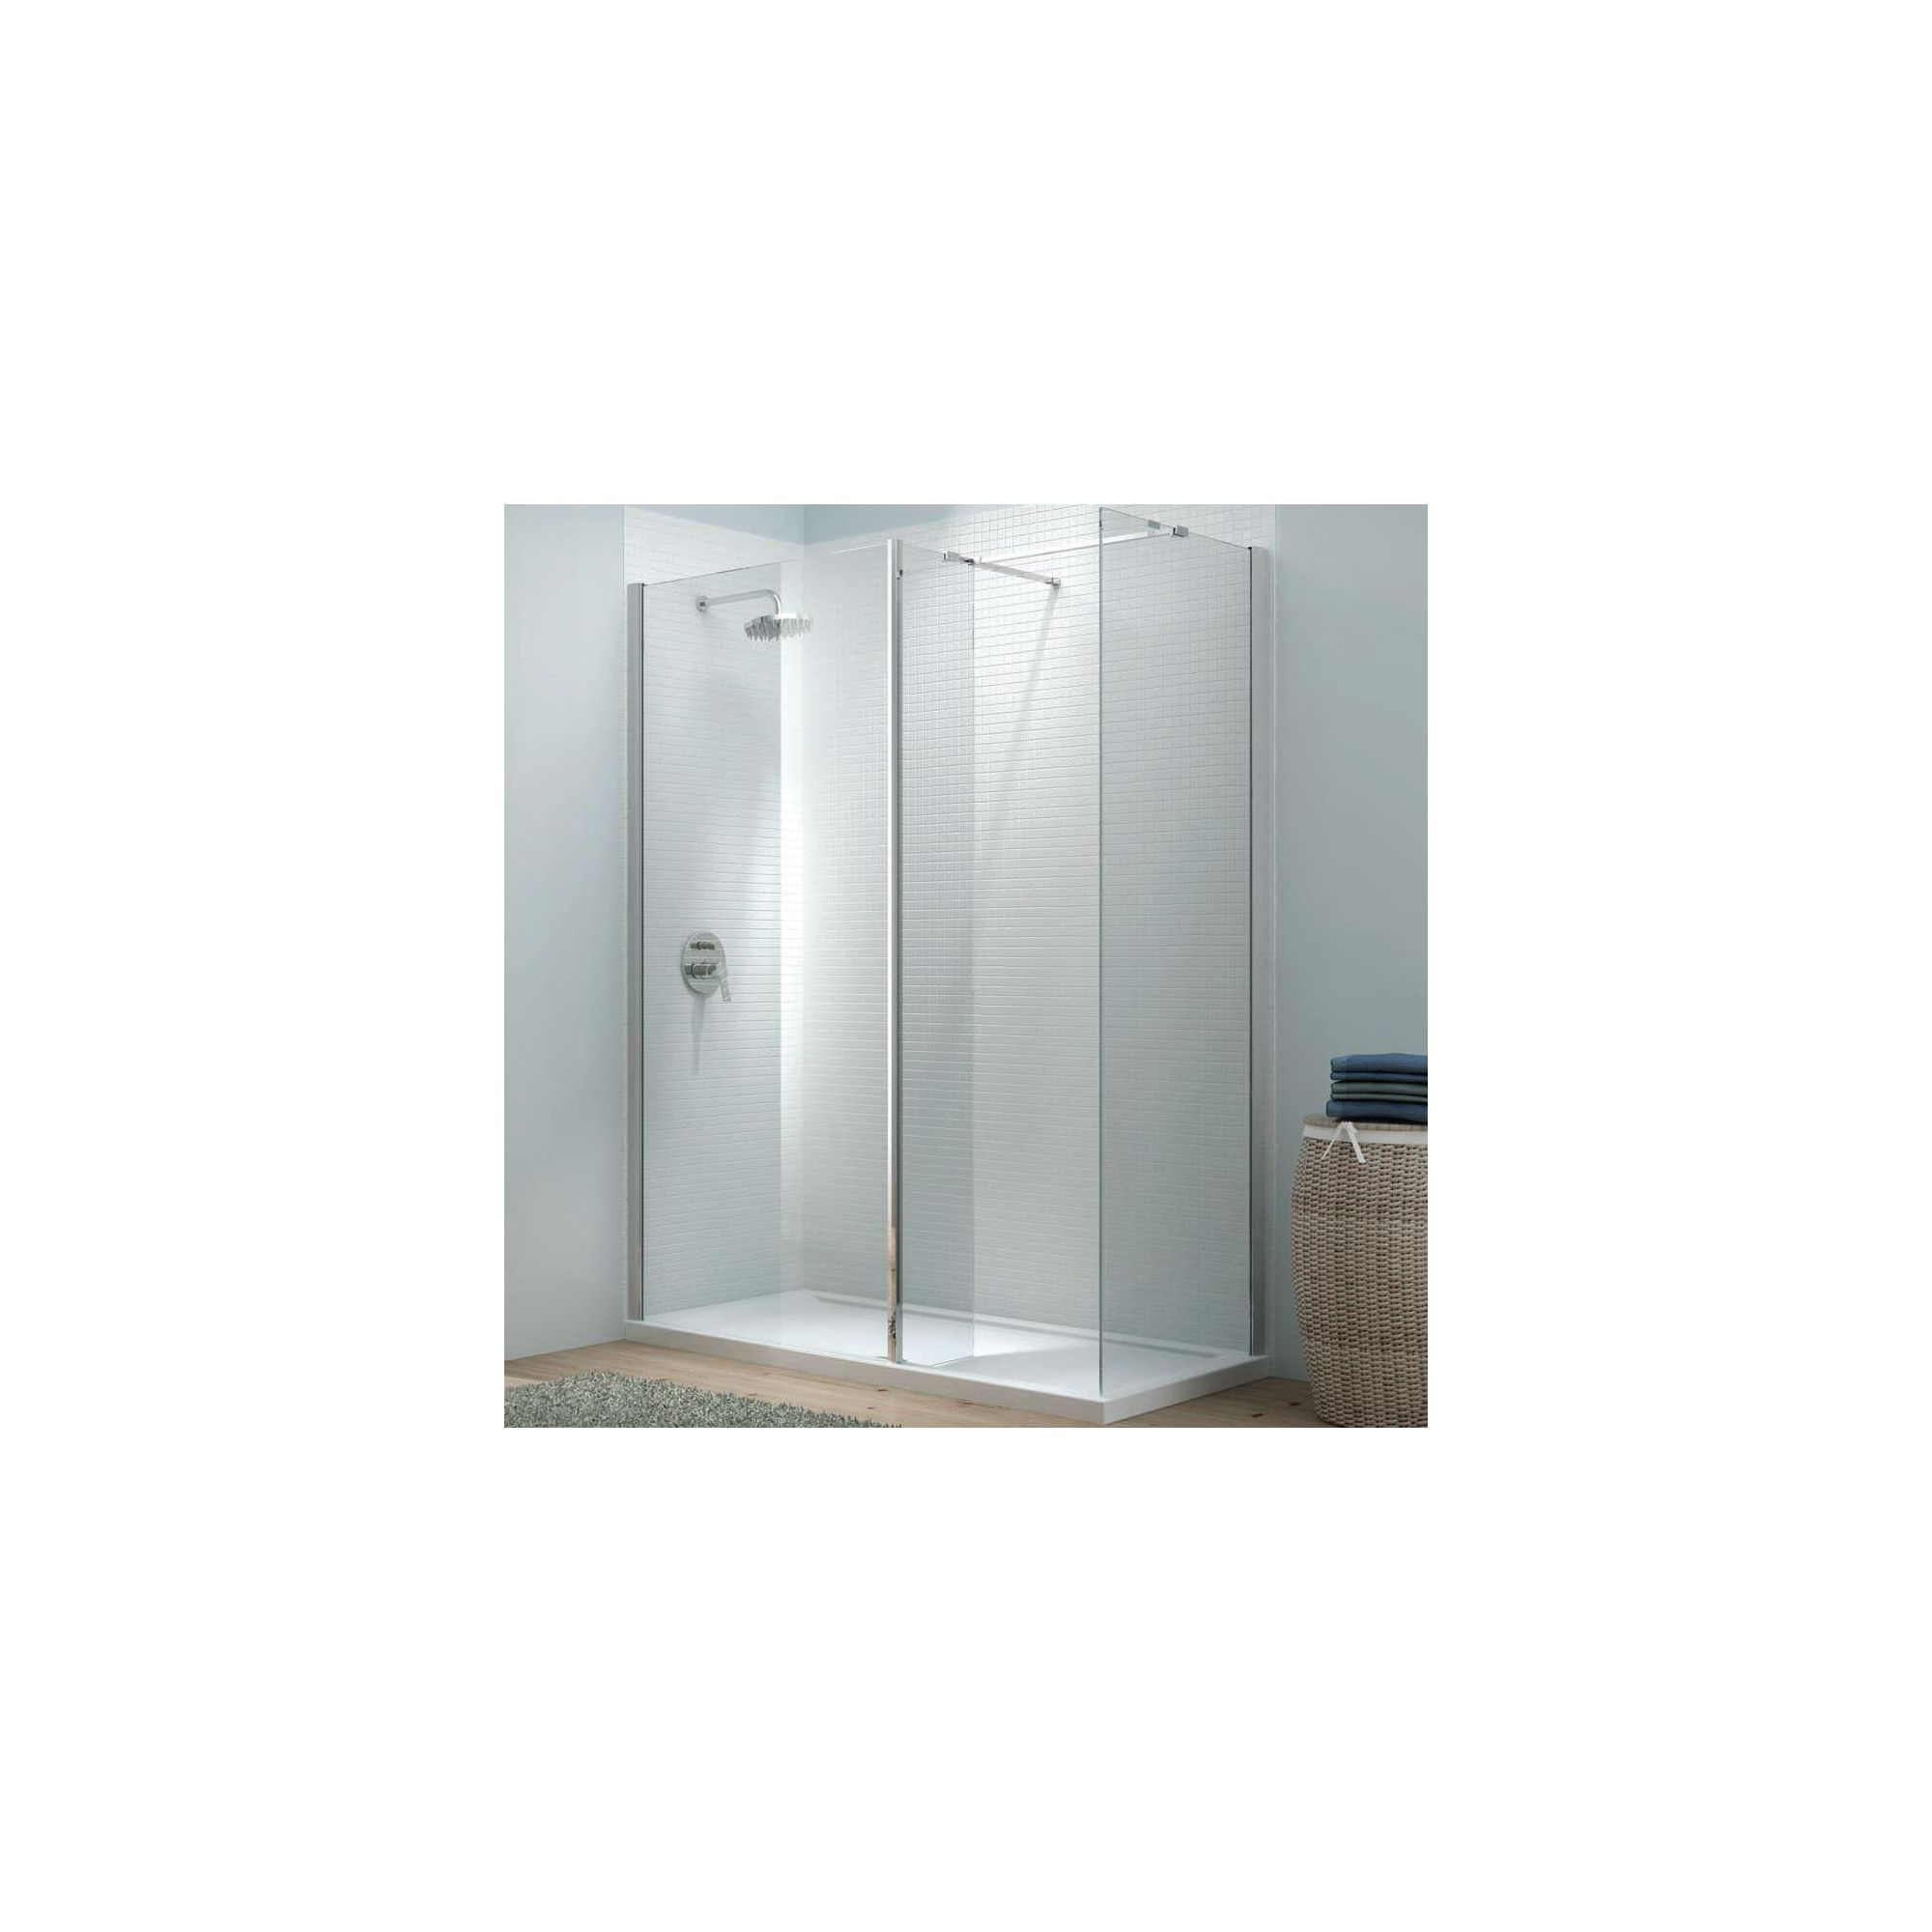 Merlyn Vivid Eight Cube Corner Walk-In Shower Enclosure, 1500mm x 800mm, Low Profile Tray, 8mm Glass at Tescos Direct